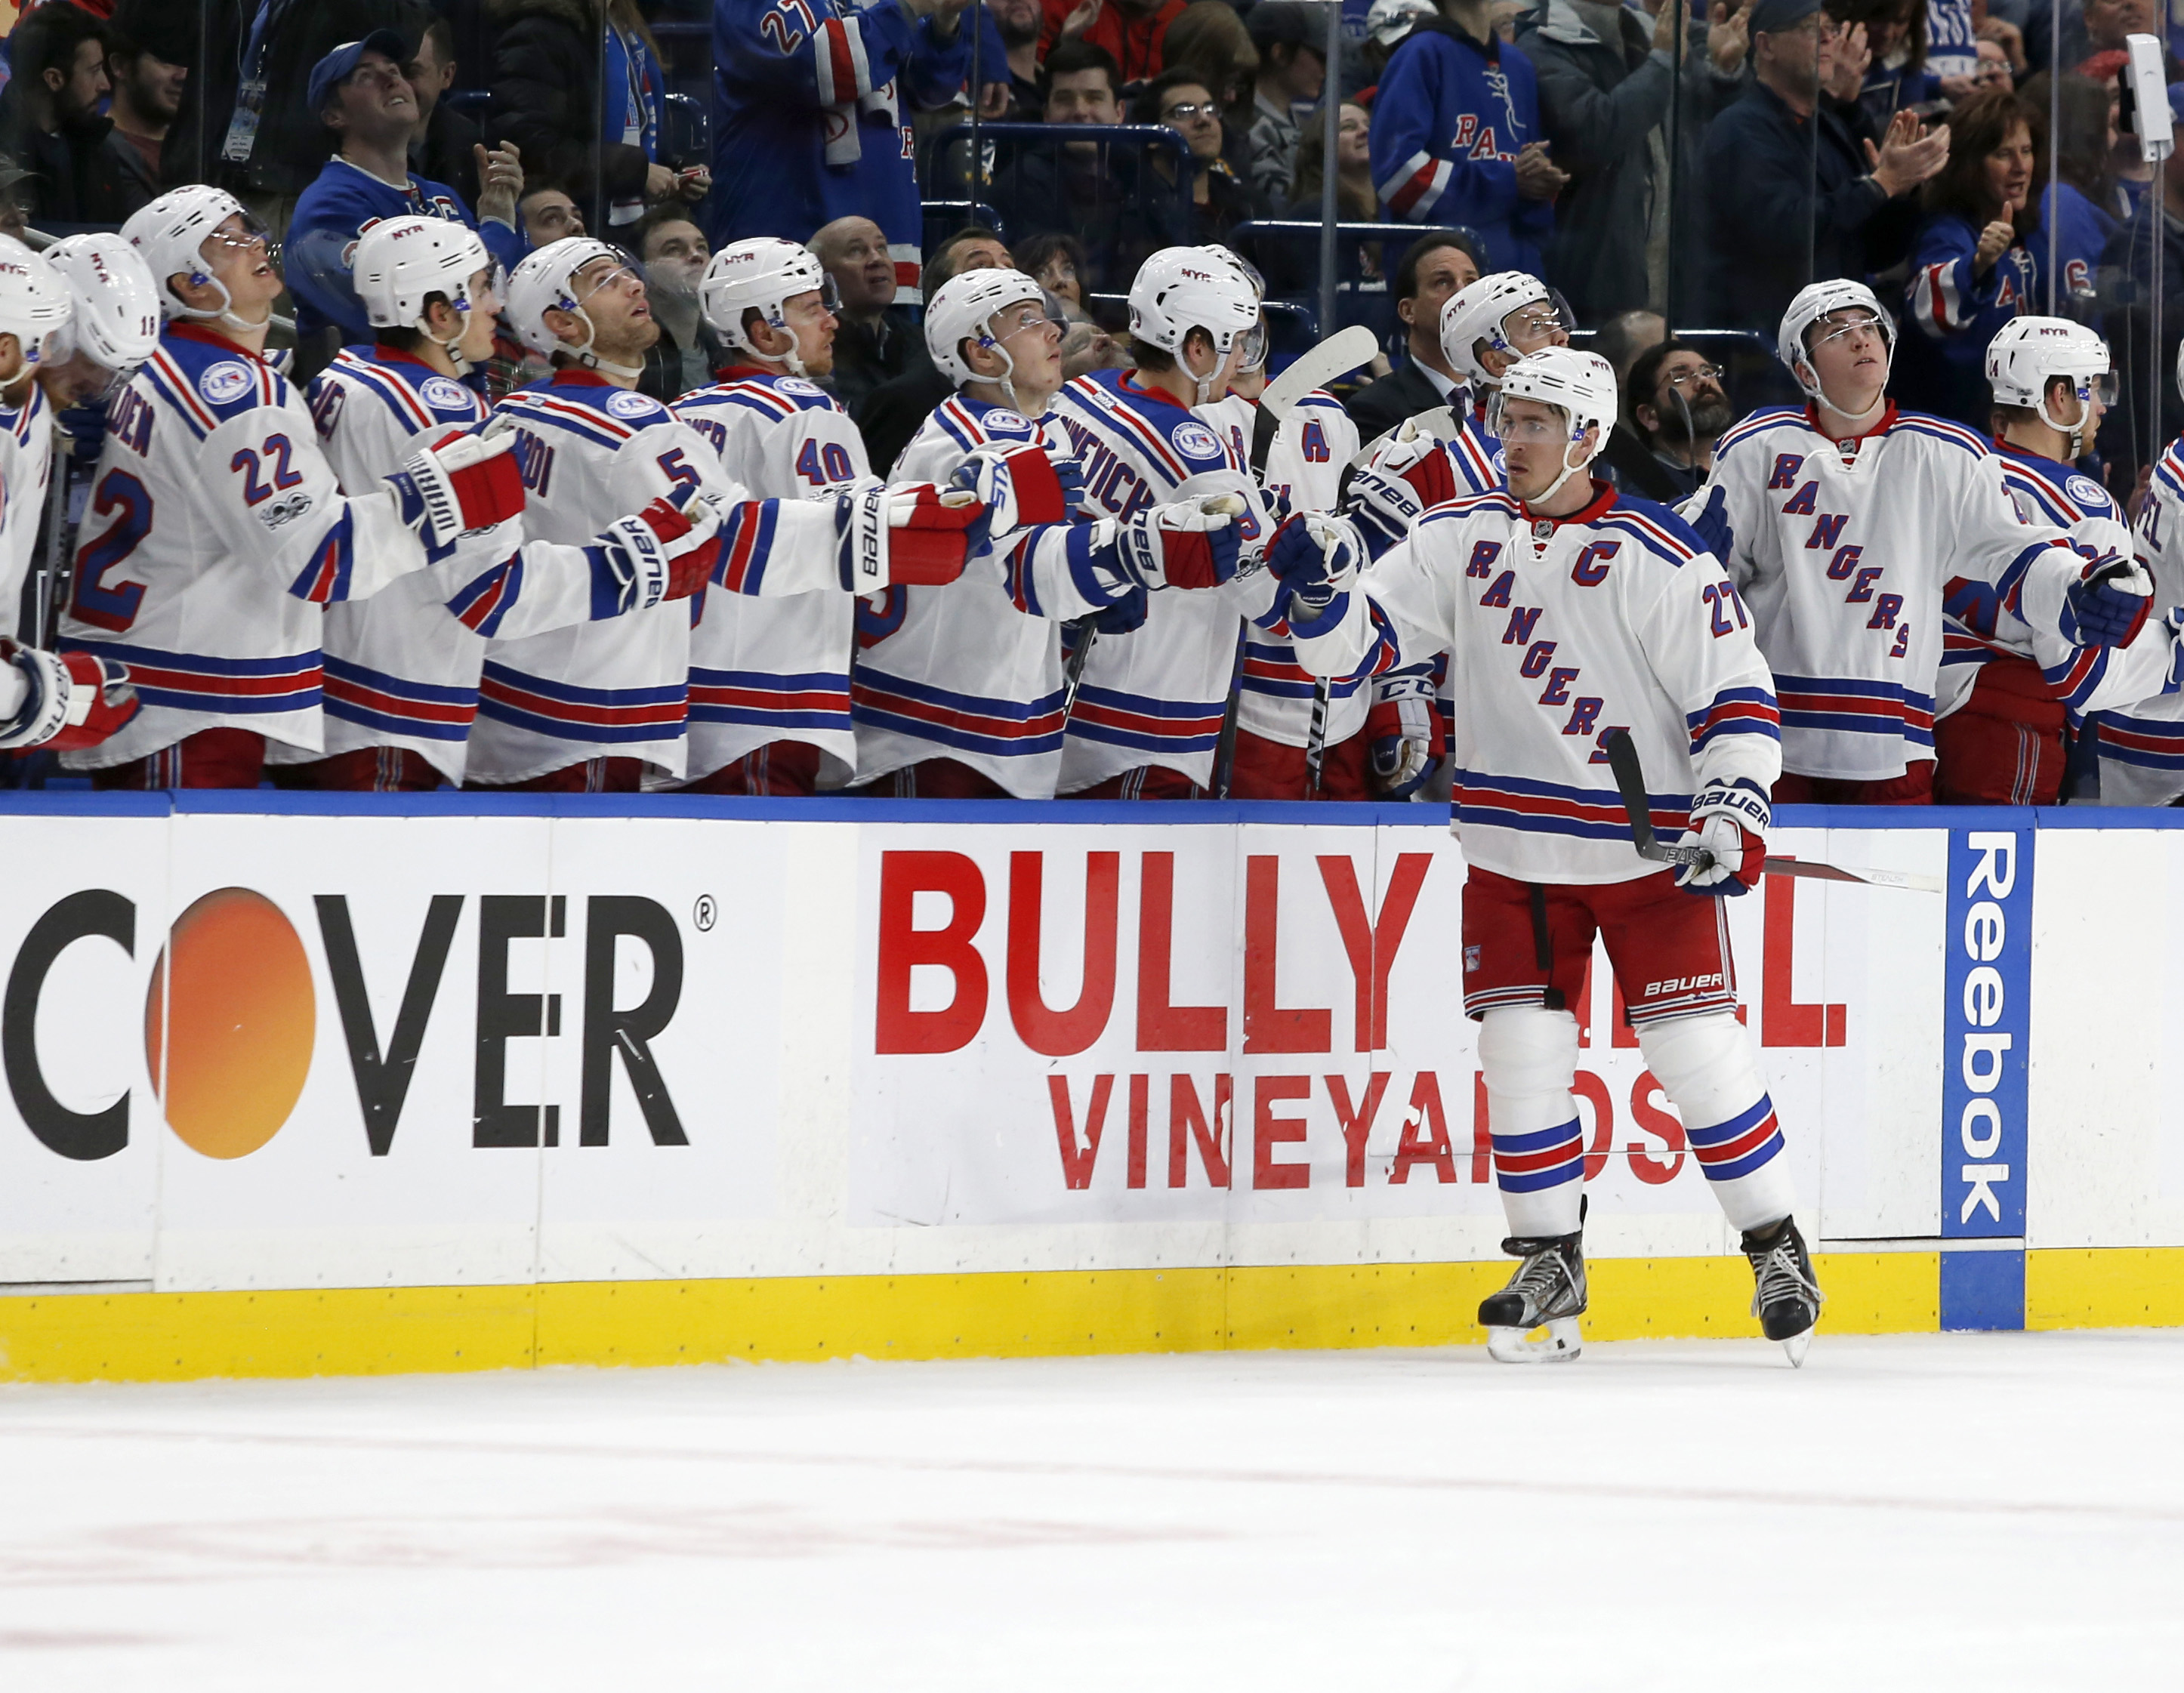 Feb 2, 2017; Buffalo, NY, USA; New York Rangers defenseman Ryan McDonagh (27) celebrates a goal during the second period against the Buffalo Sabres at KeyBank Center. Mandatory Credit: Timothy T. Ludwig-USA TODAY Sports